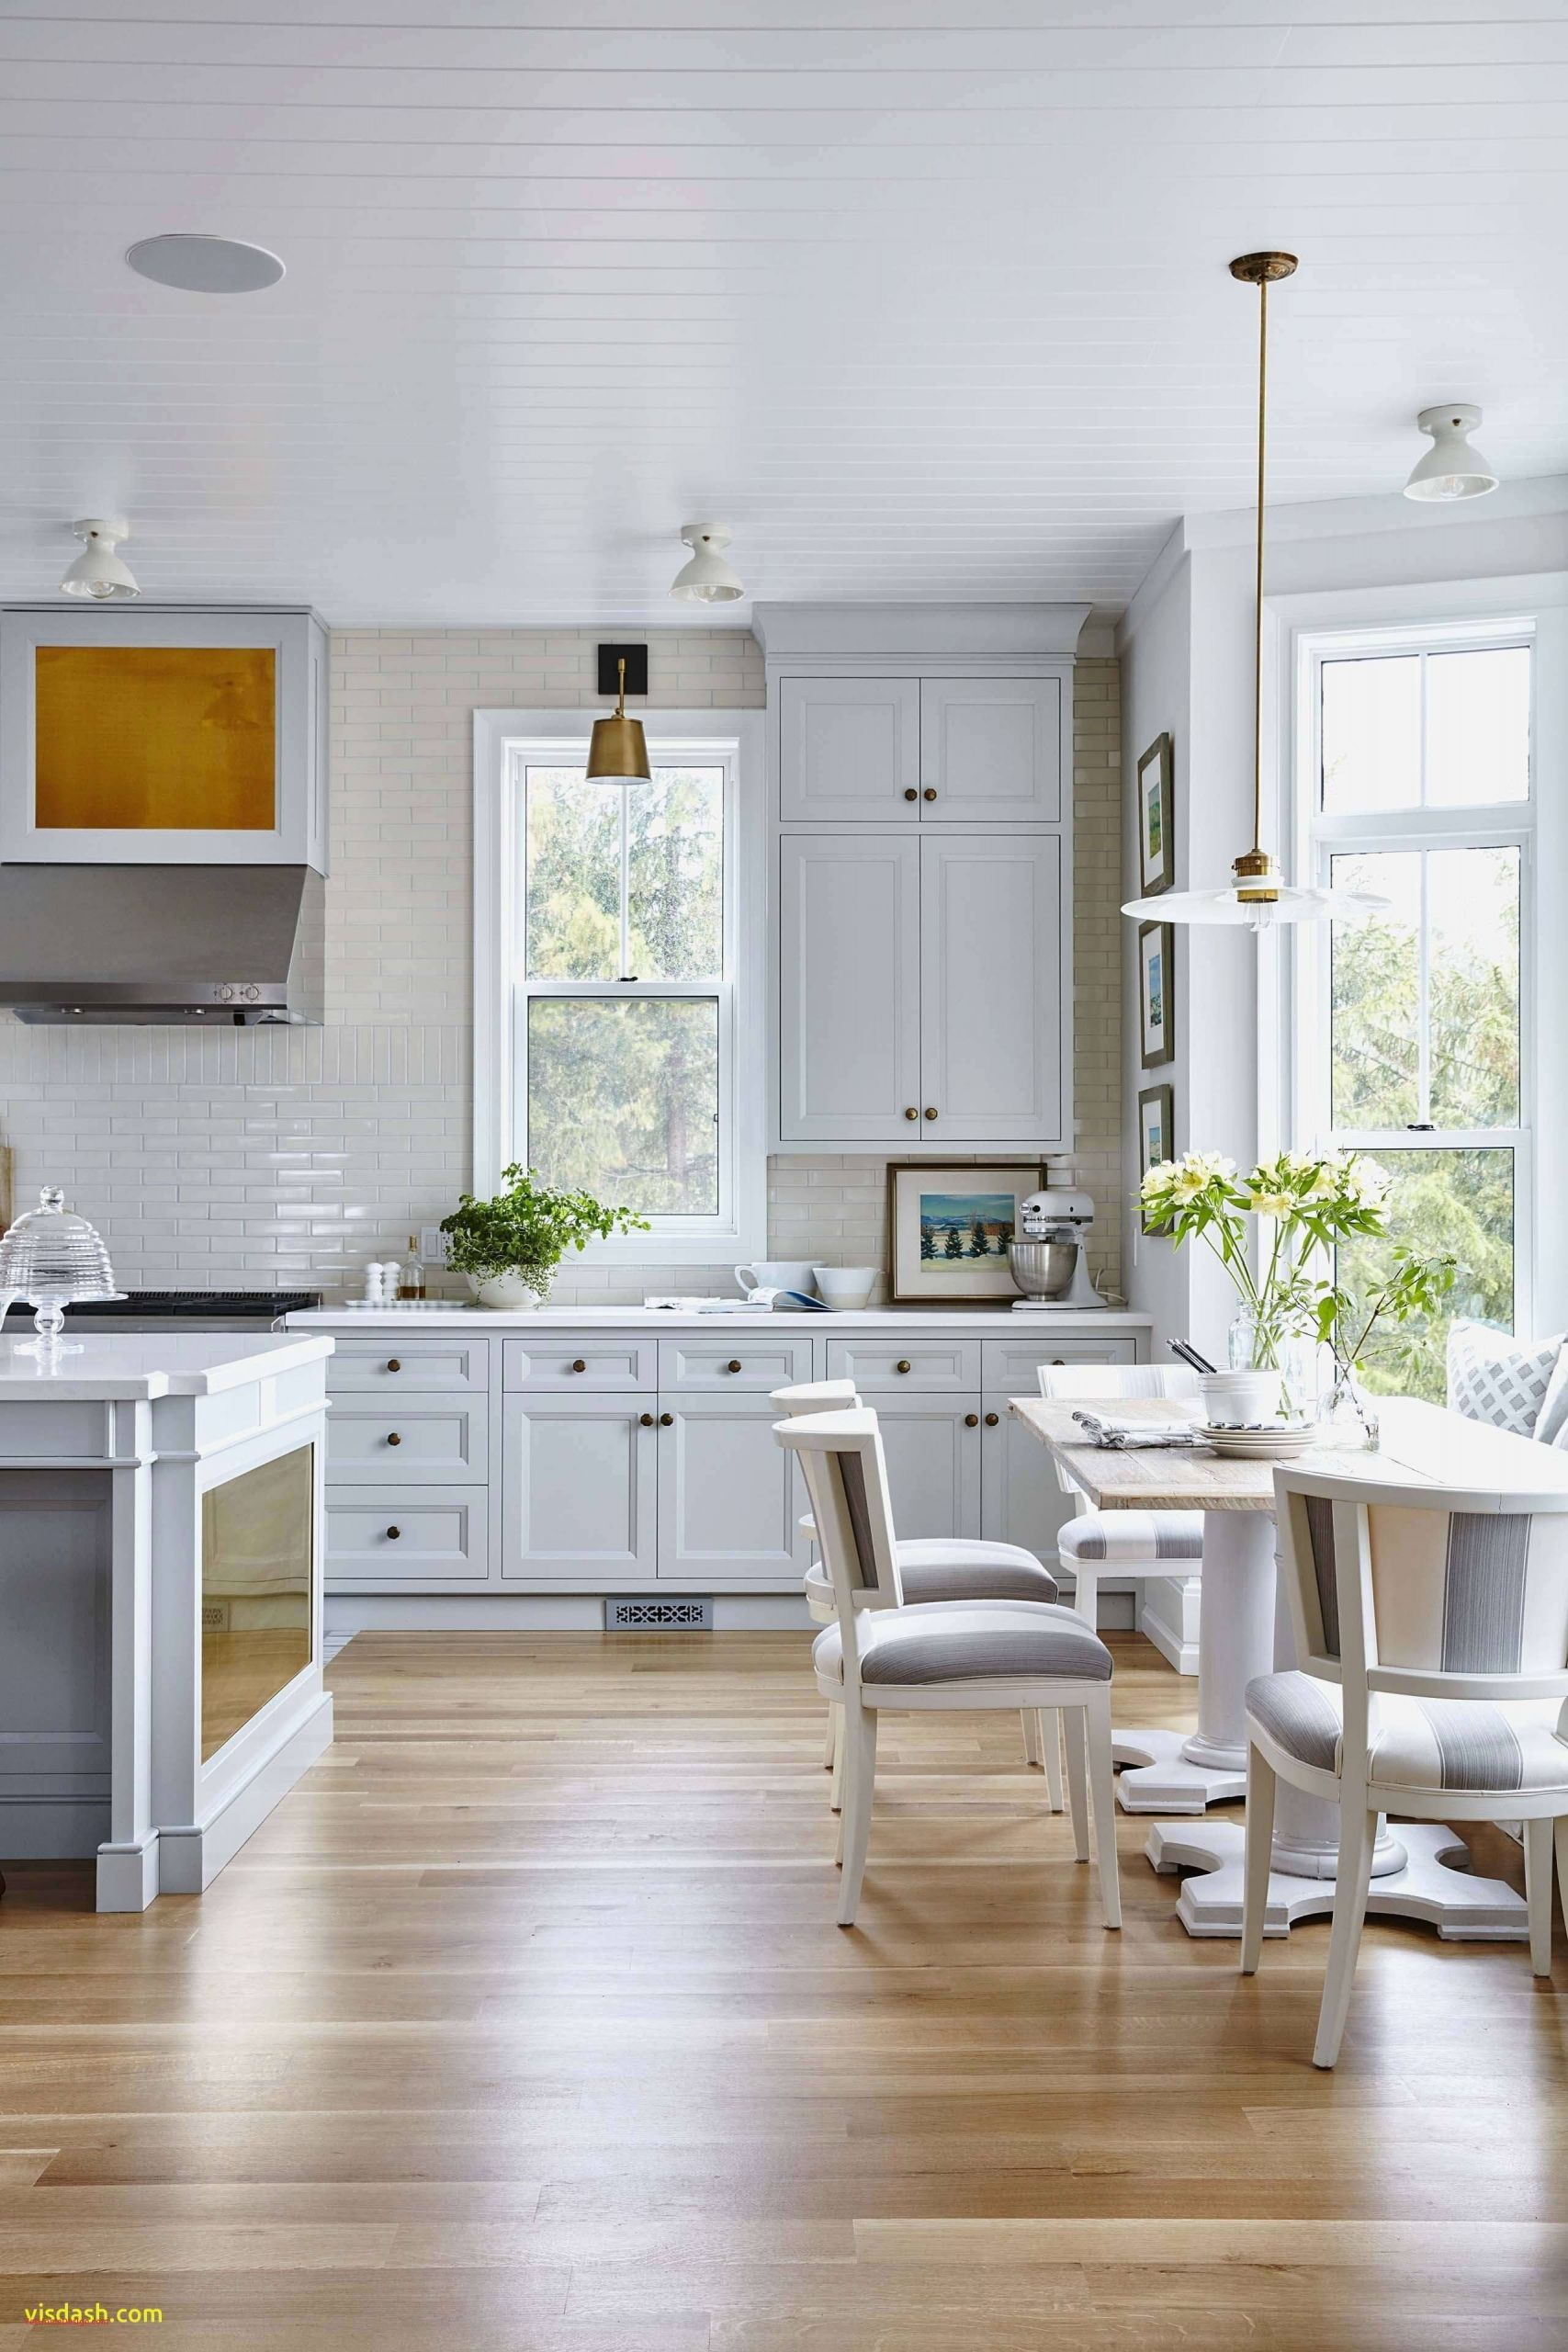 White Kitchens Fresh White On White Kitchen Backsplash Download Wall Tile Kitchen